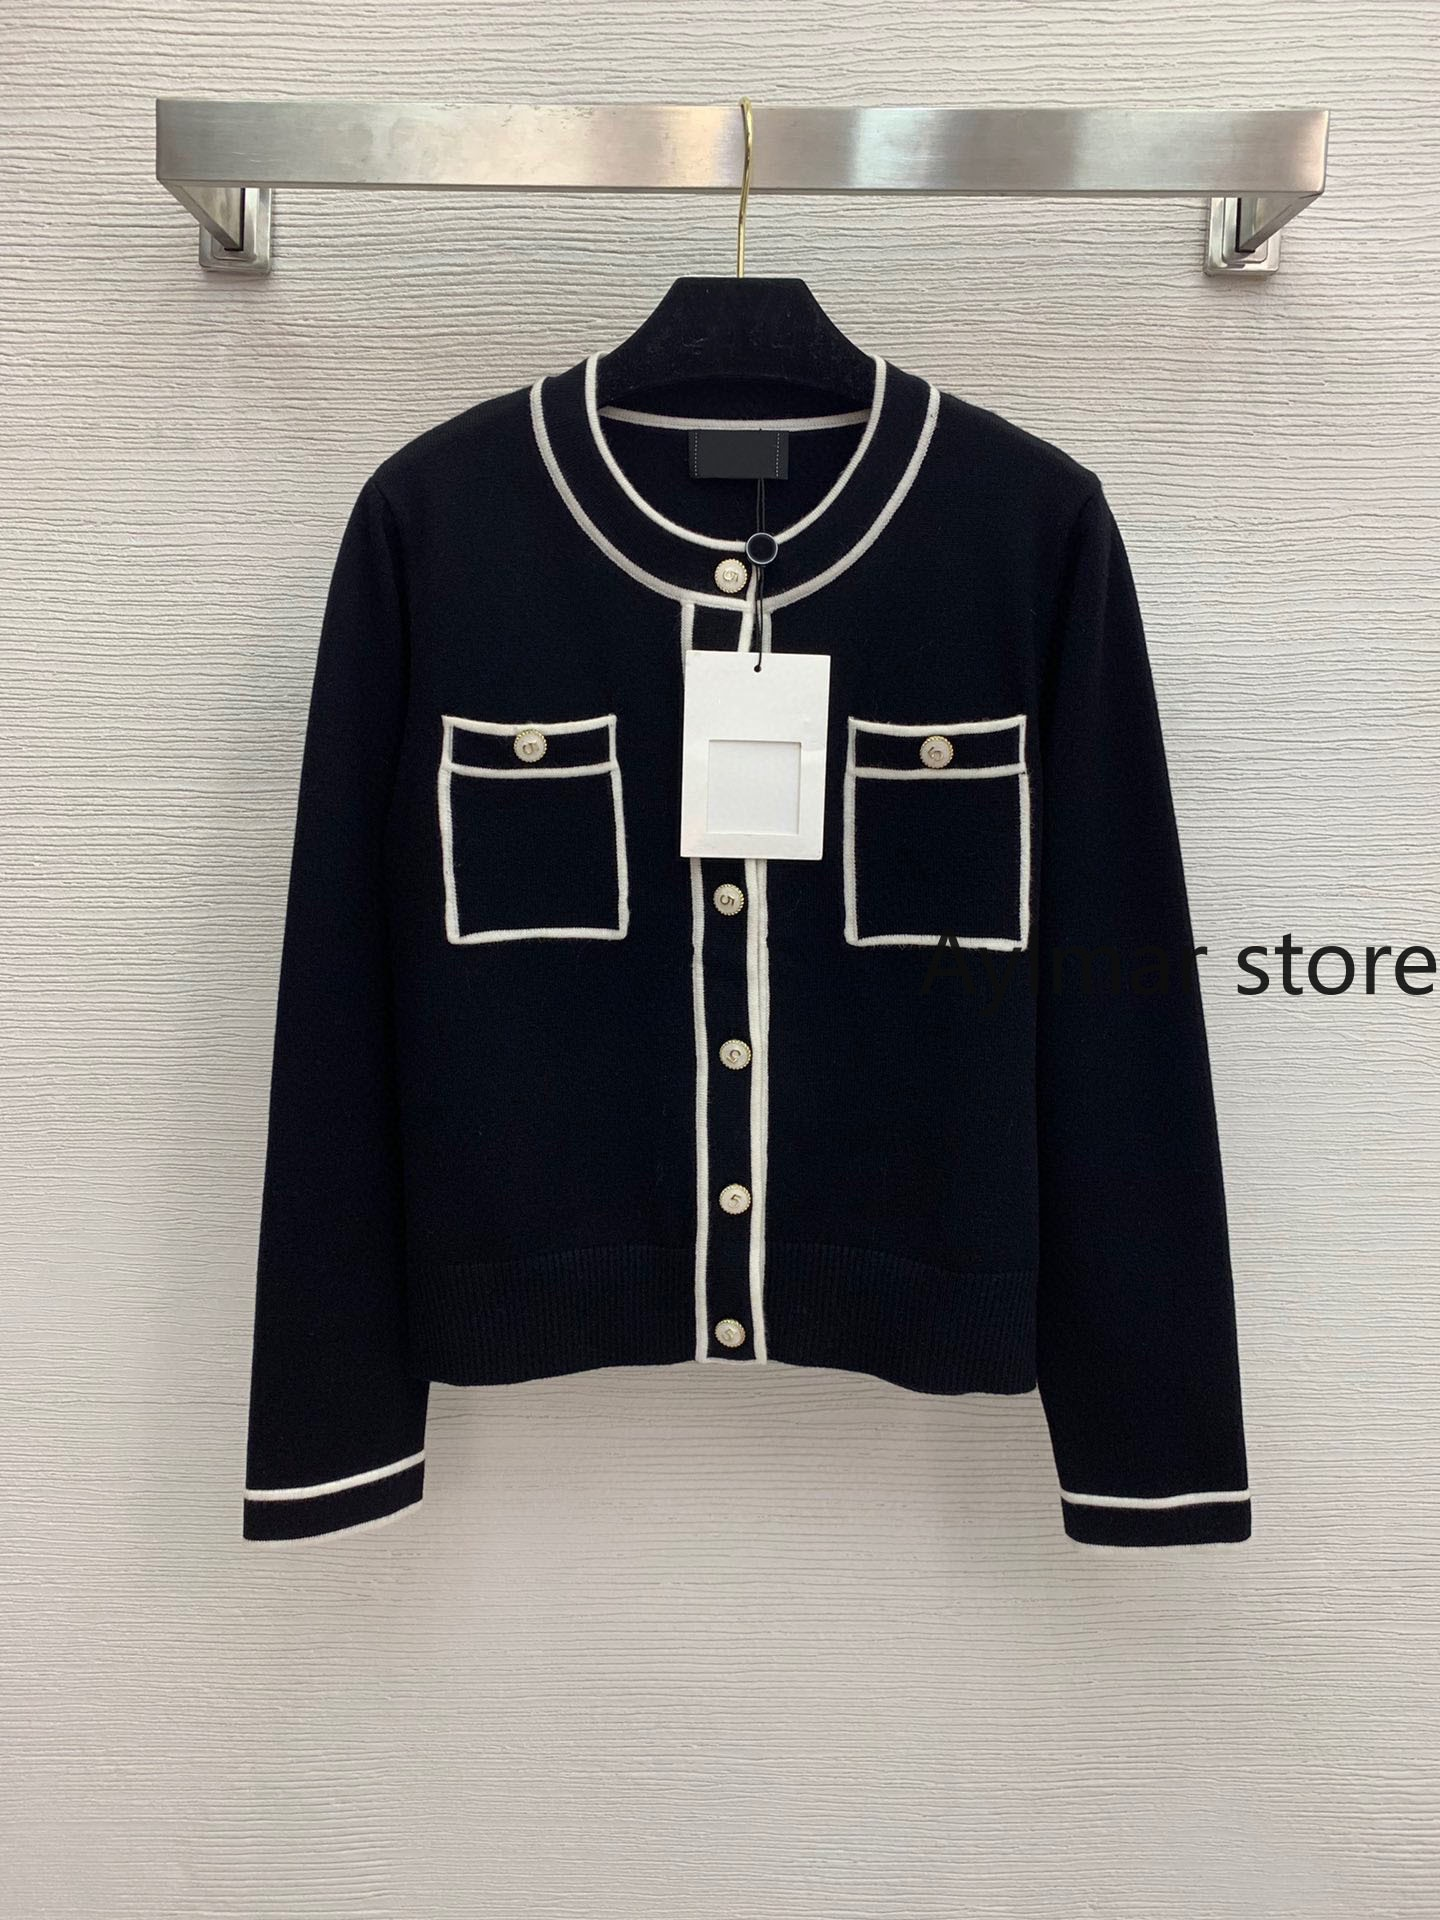 High quality 2021 autumn winter new women 5-button round neck knitted cardigan long sleeve short coat pink cardigan  cardigans enlarge